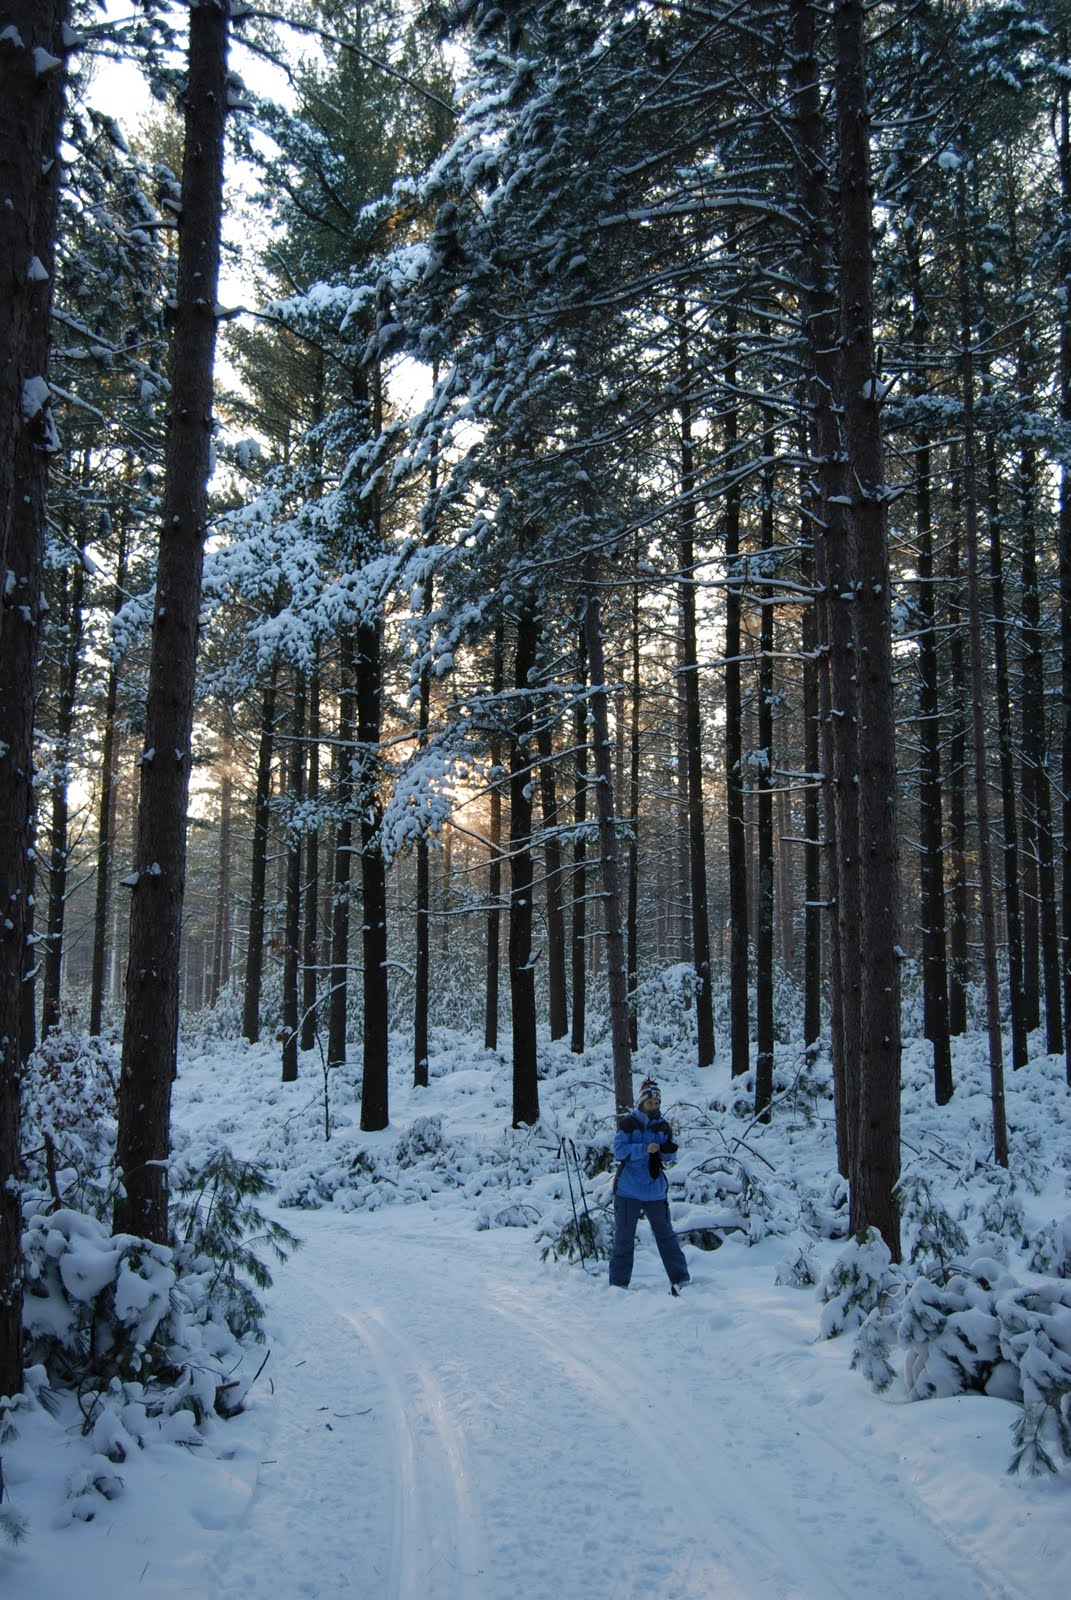 Plover River Ski Trails. Photo by Jim Buchholz